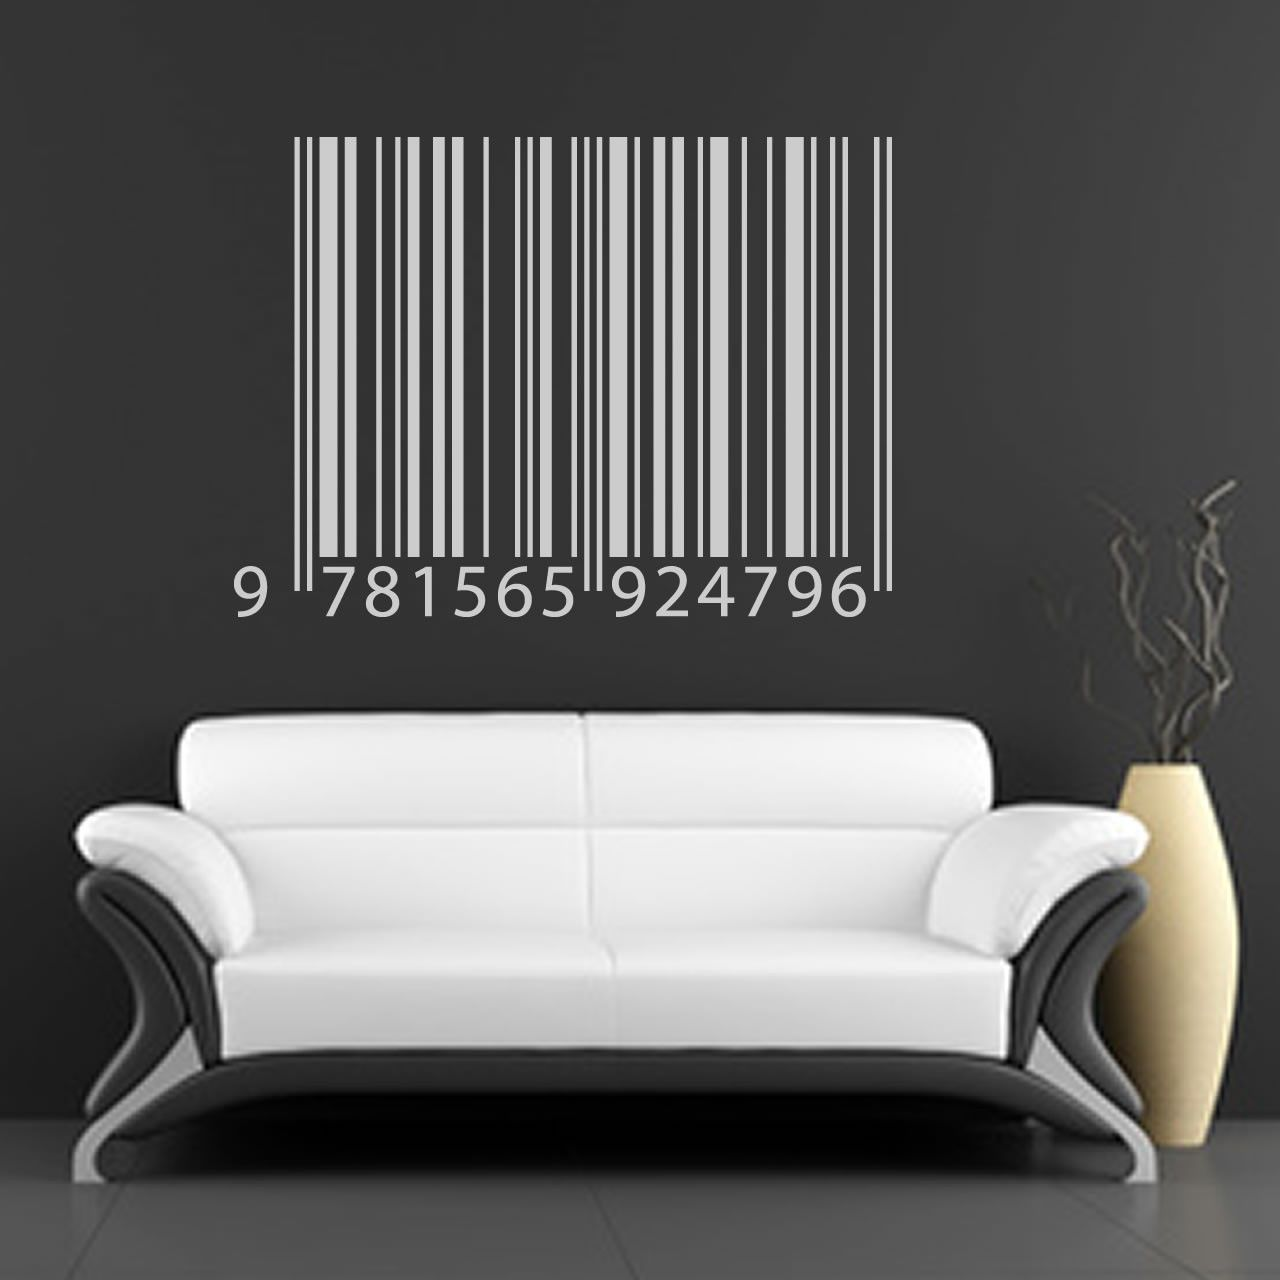 spartacus art wall stickers decals transfers barcode wall